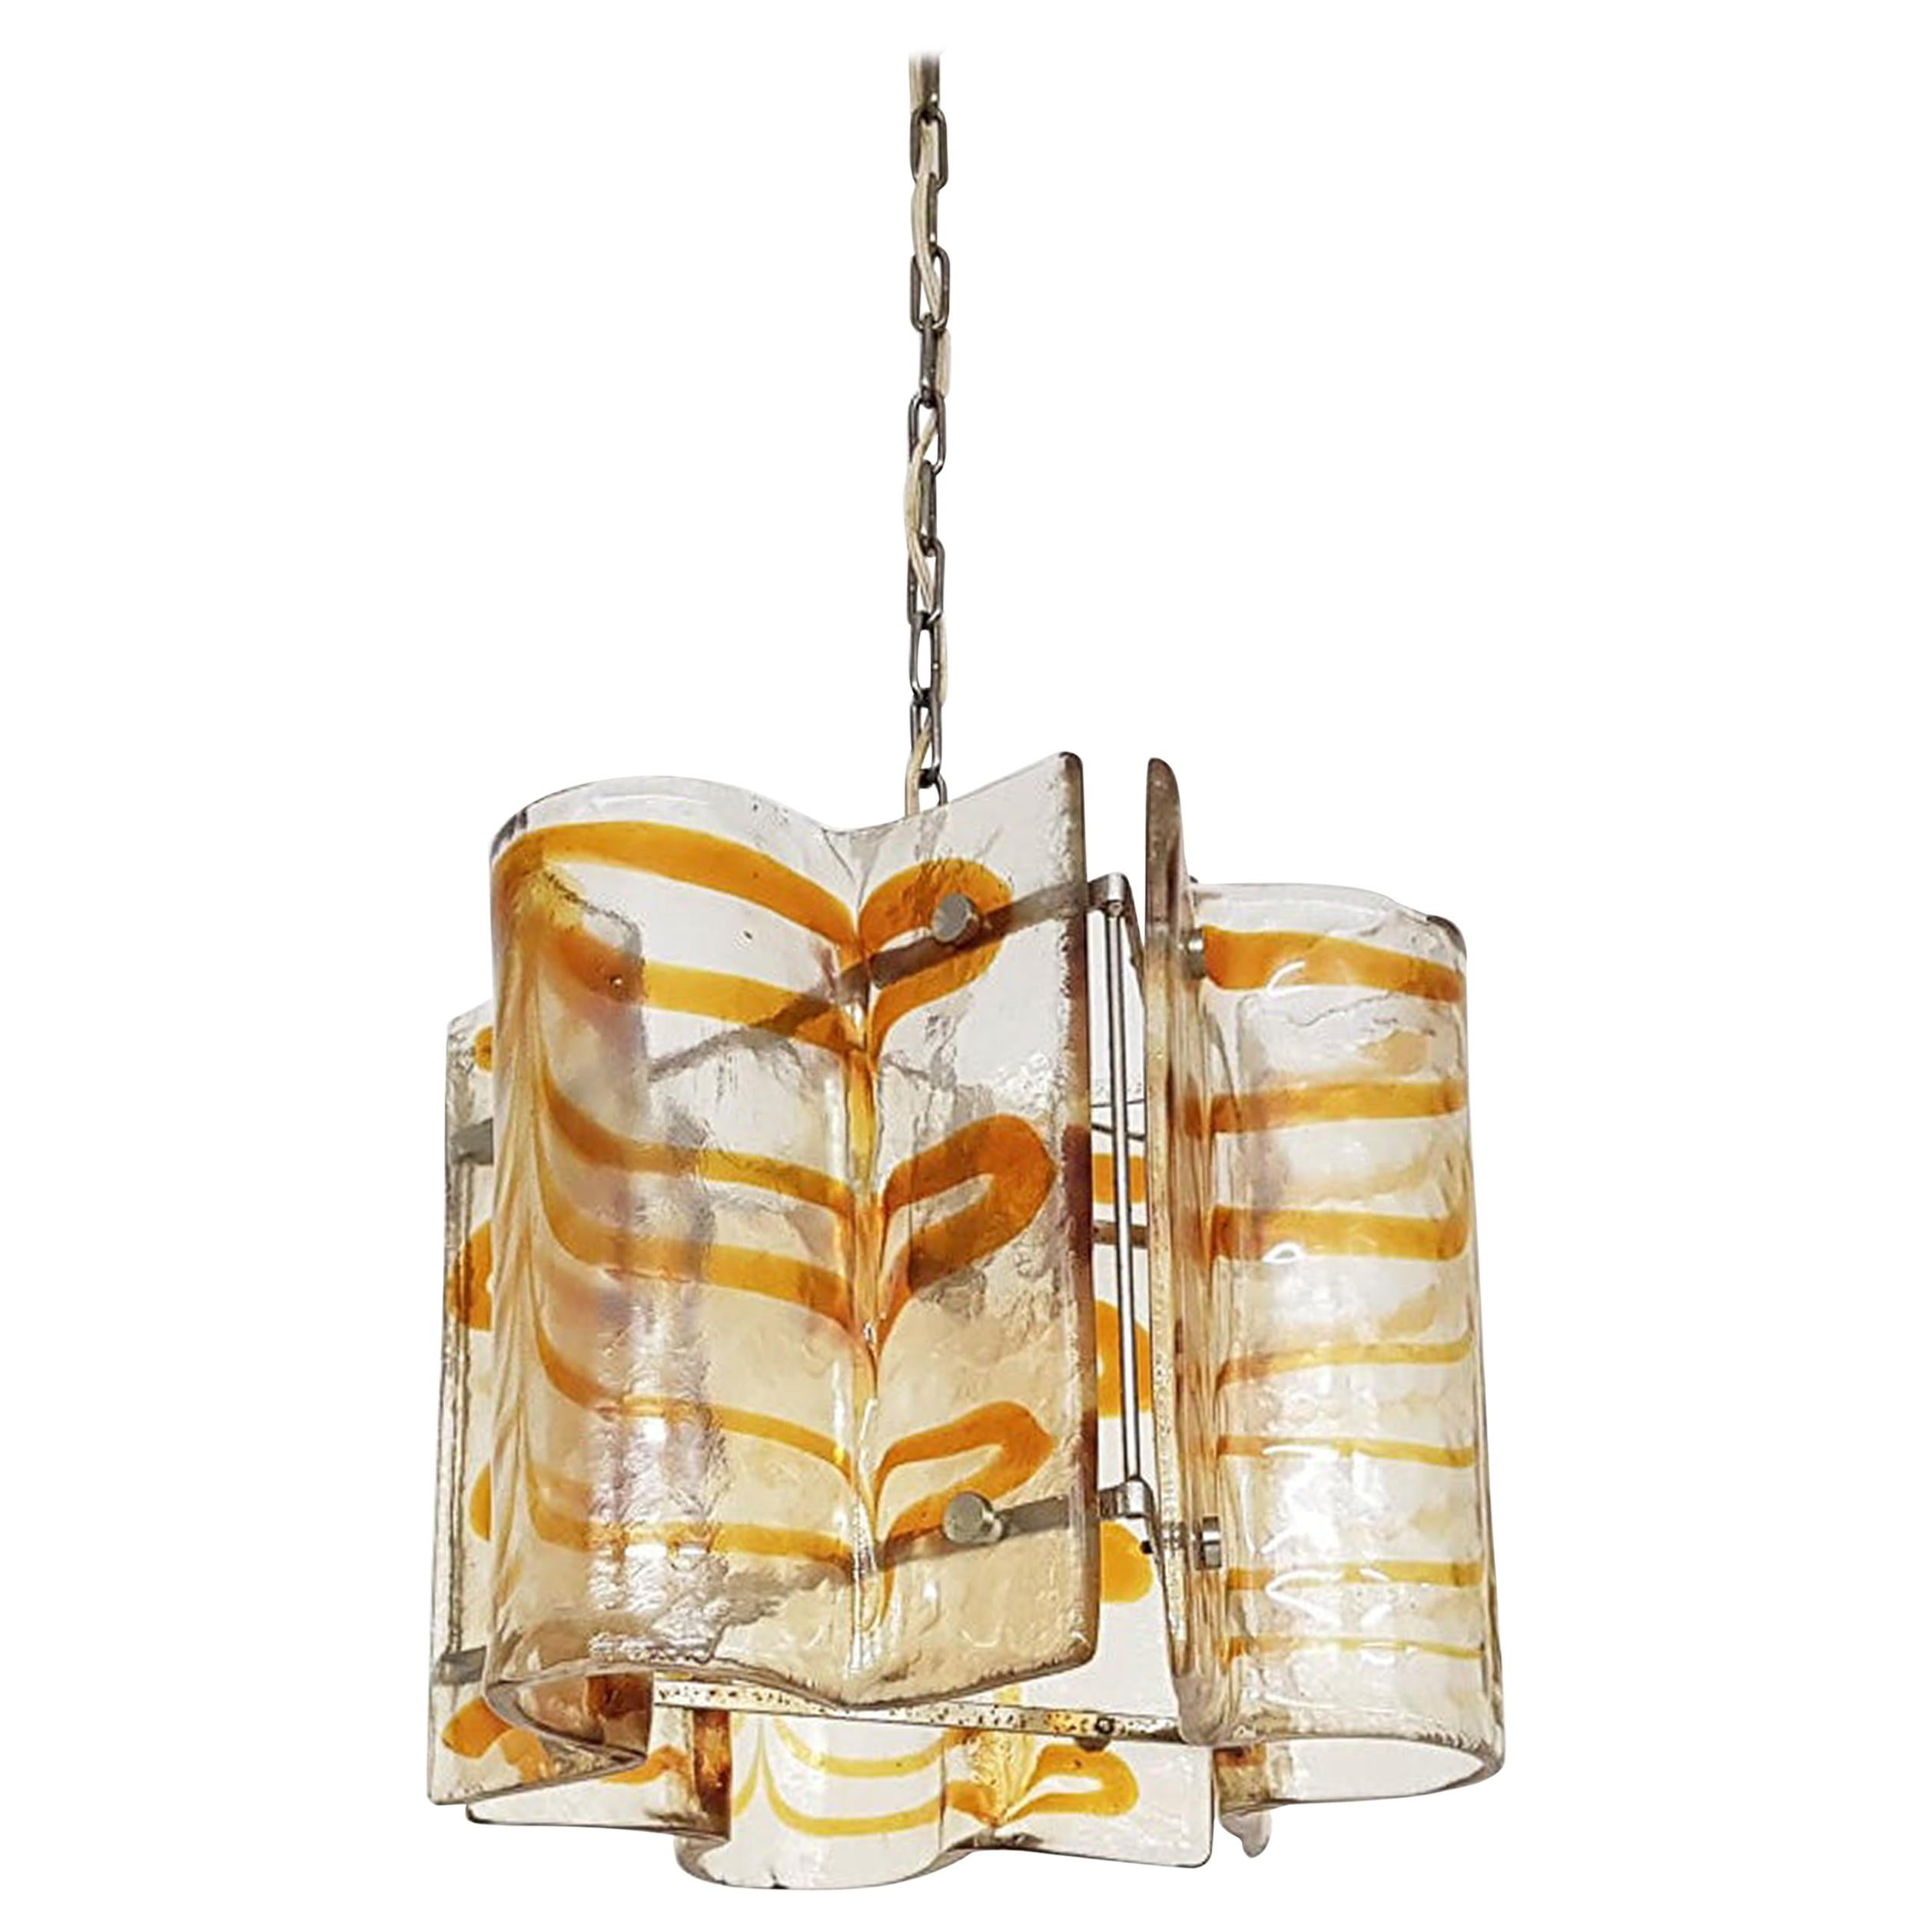 Murano Blown Glass Chandelier Atributed to Carlo Nason for Mazegga, Italy, 1960s